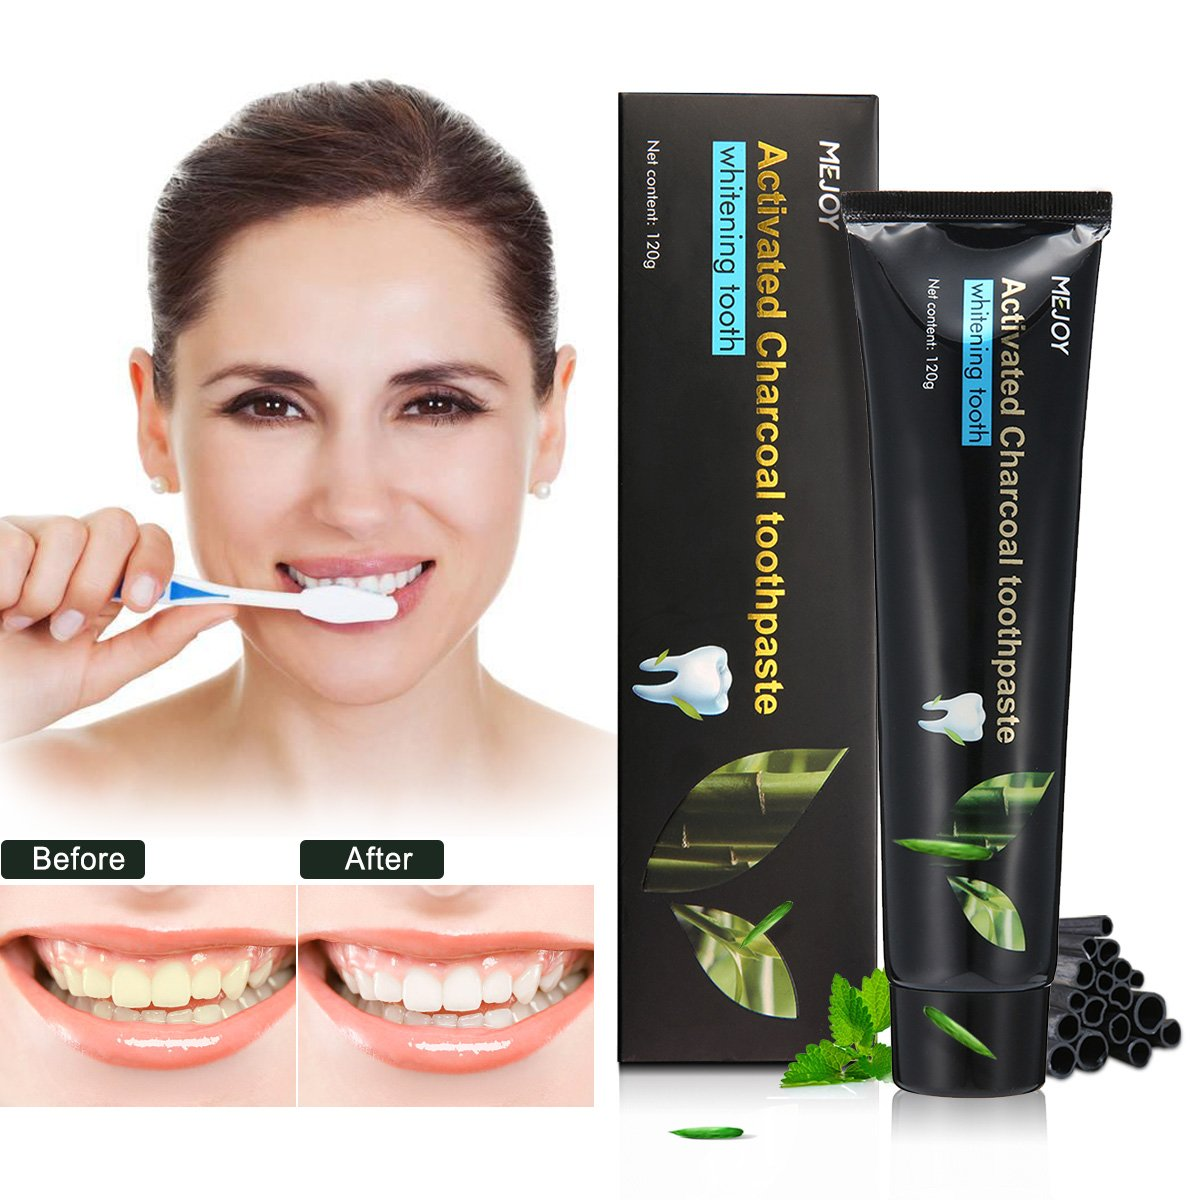 Whitening Toothpaste, Y.F.M 4.2oz Activated Charcoal Teeth Health Toothpaste, Improves Oral Health and Freshens Breath, Removes Tooth Stains Teeth Care